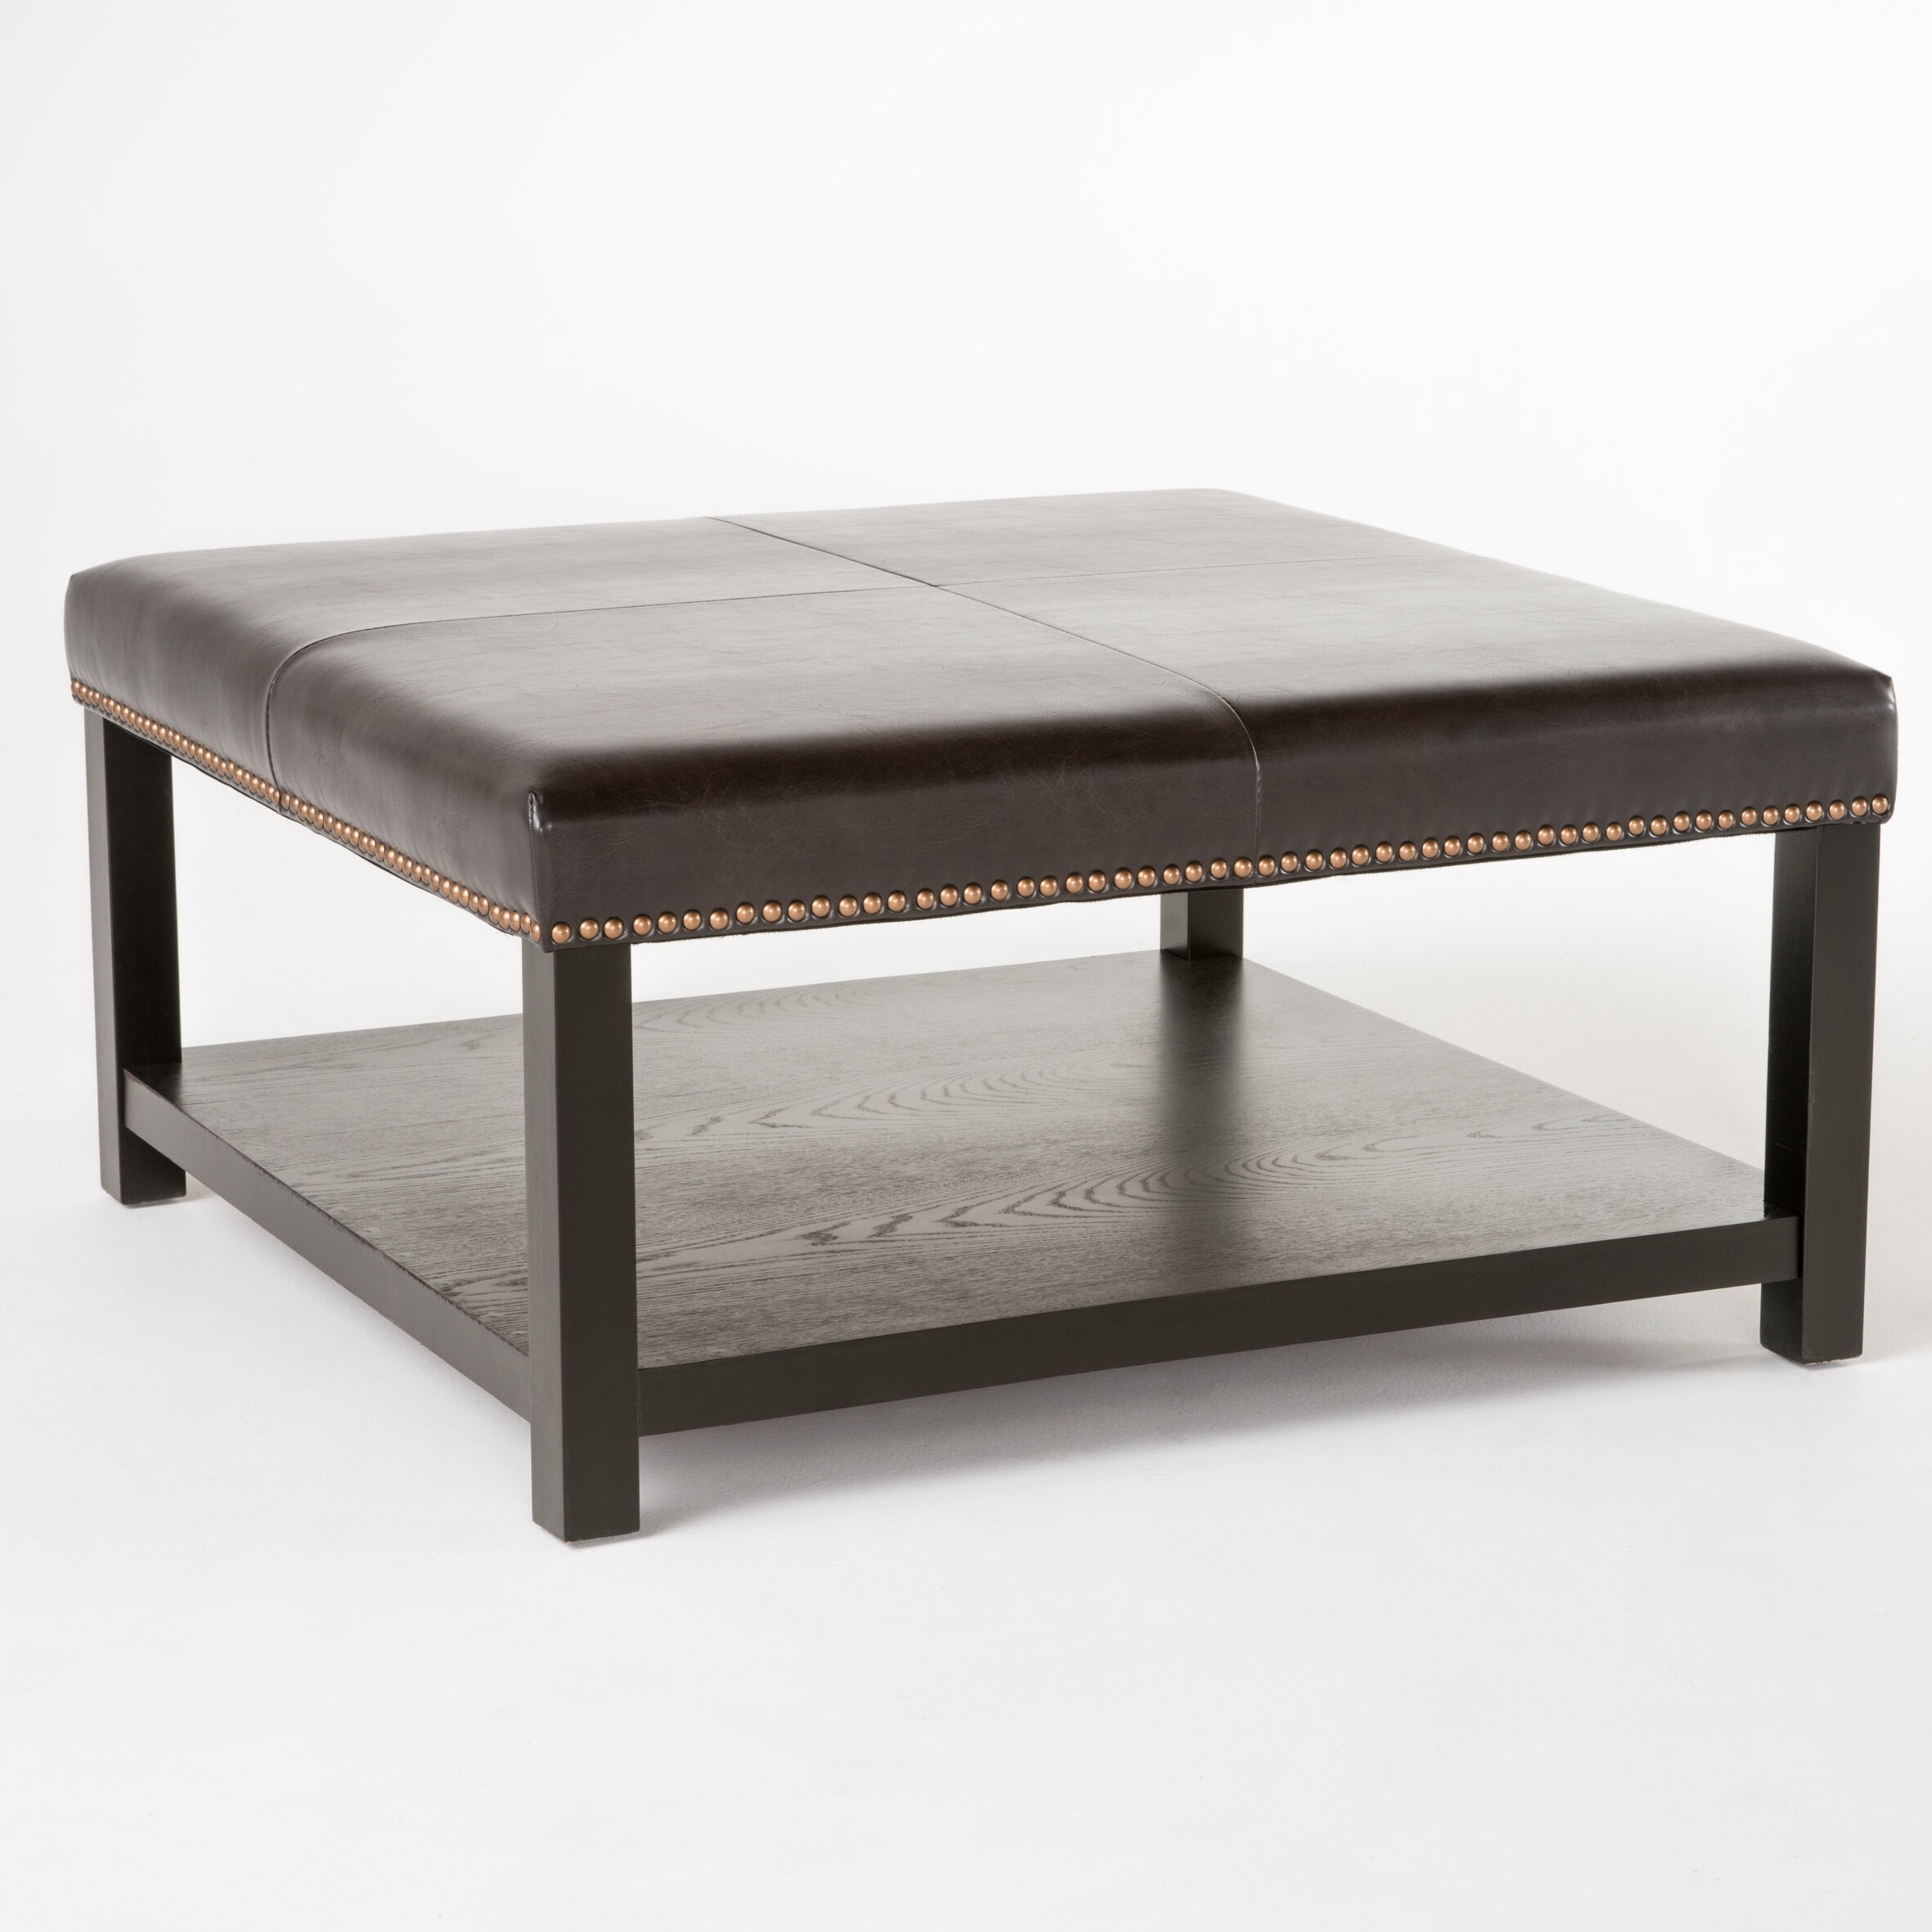 ottoman hudson phyl catnapper jackson by steel furniture cocktail s bernie